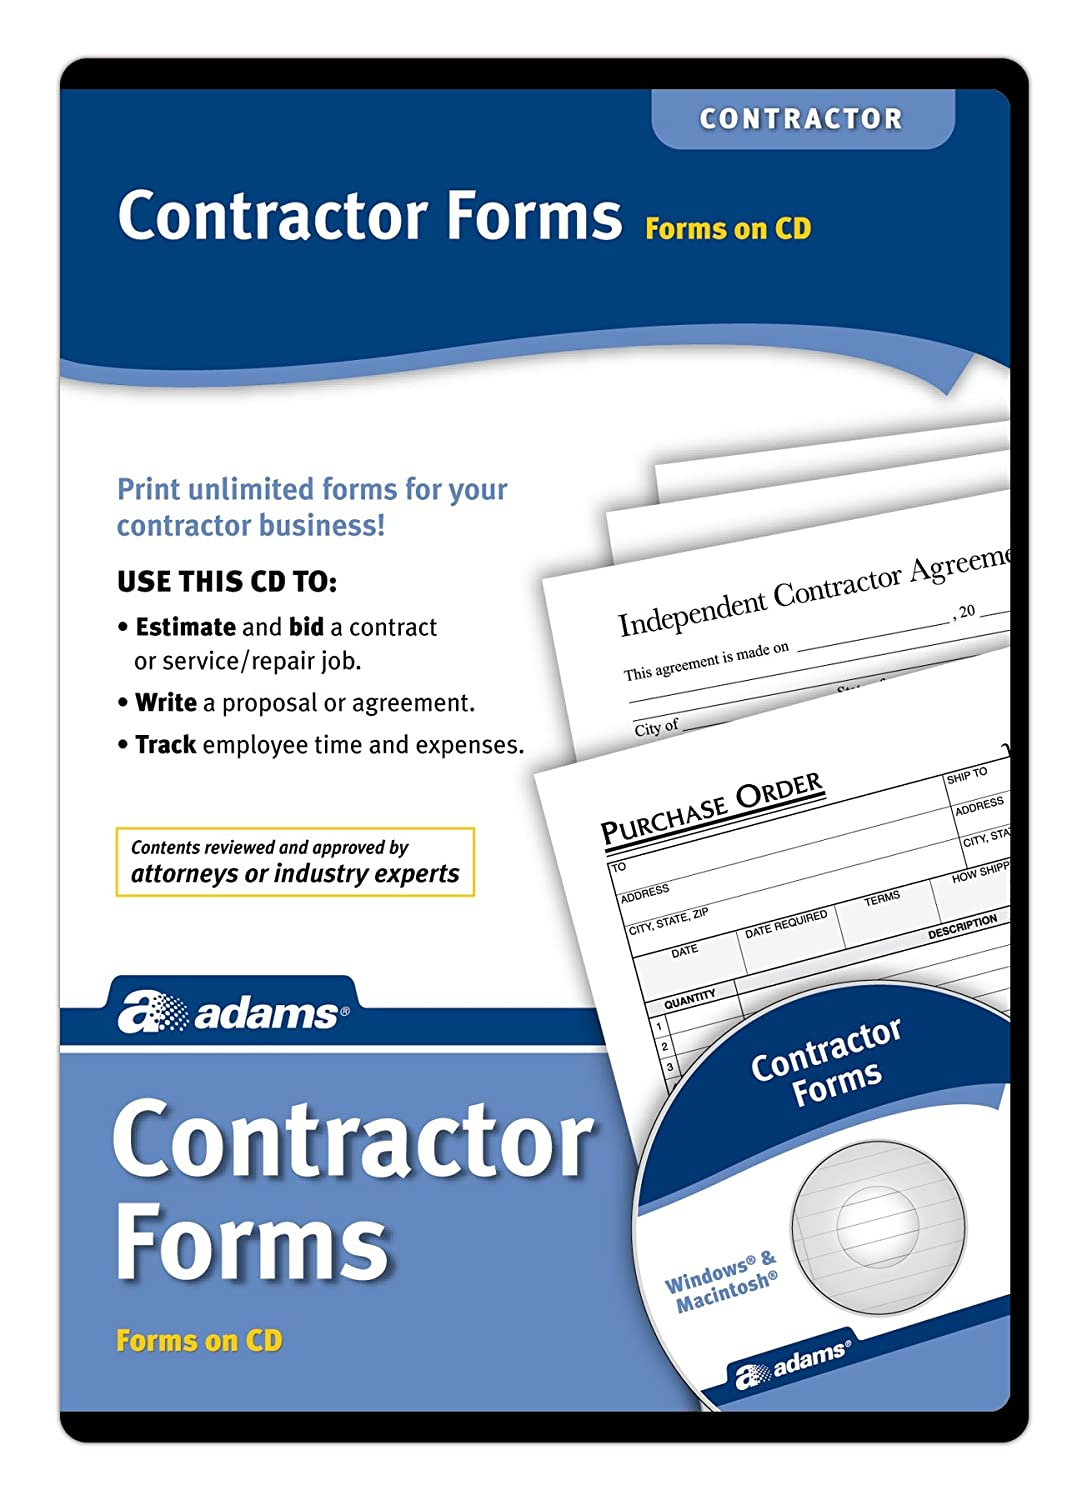 com adams contractor s forms on cd ss legal forms com adams contractor s forms on cd ss4301 legal forms office products